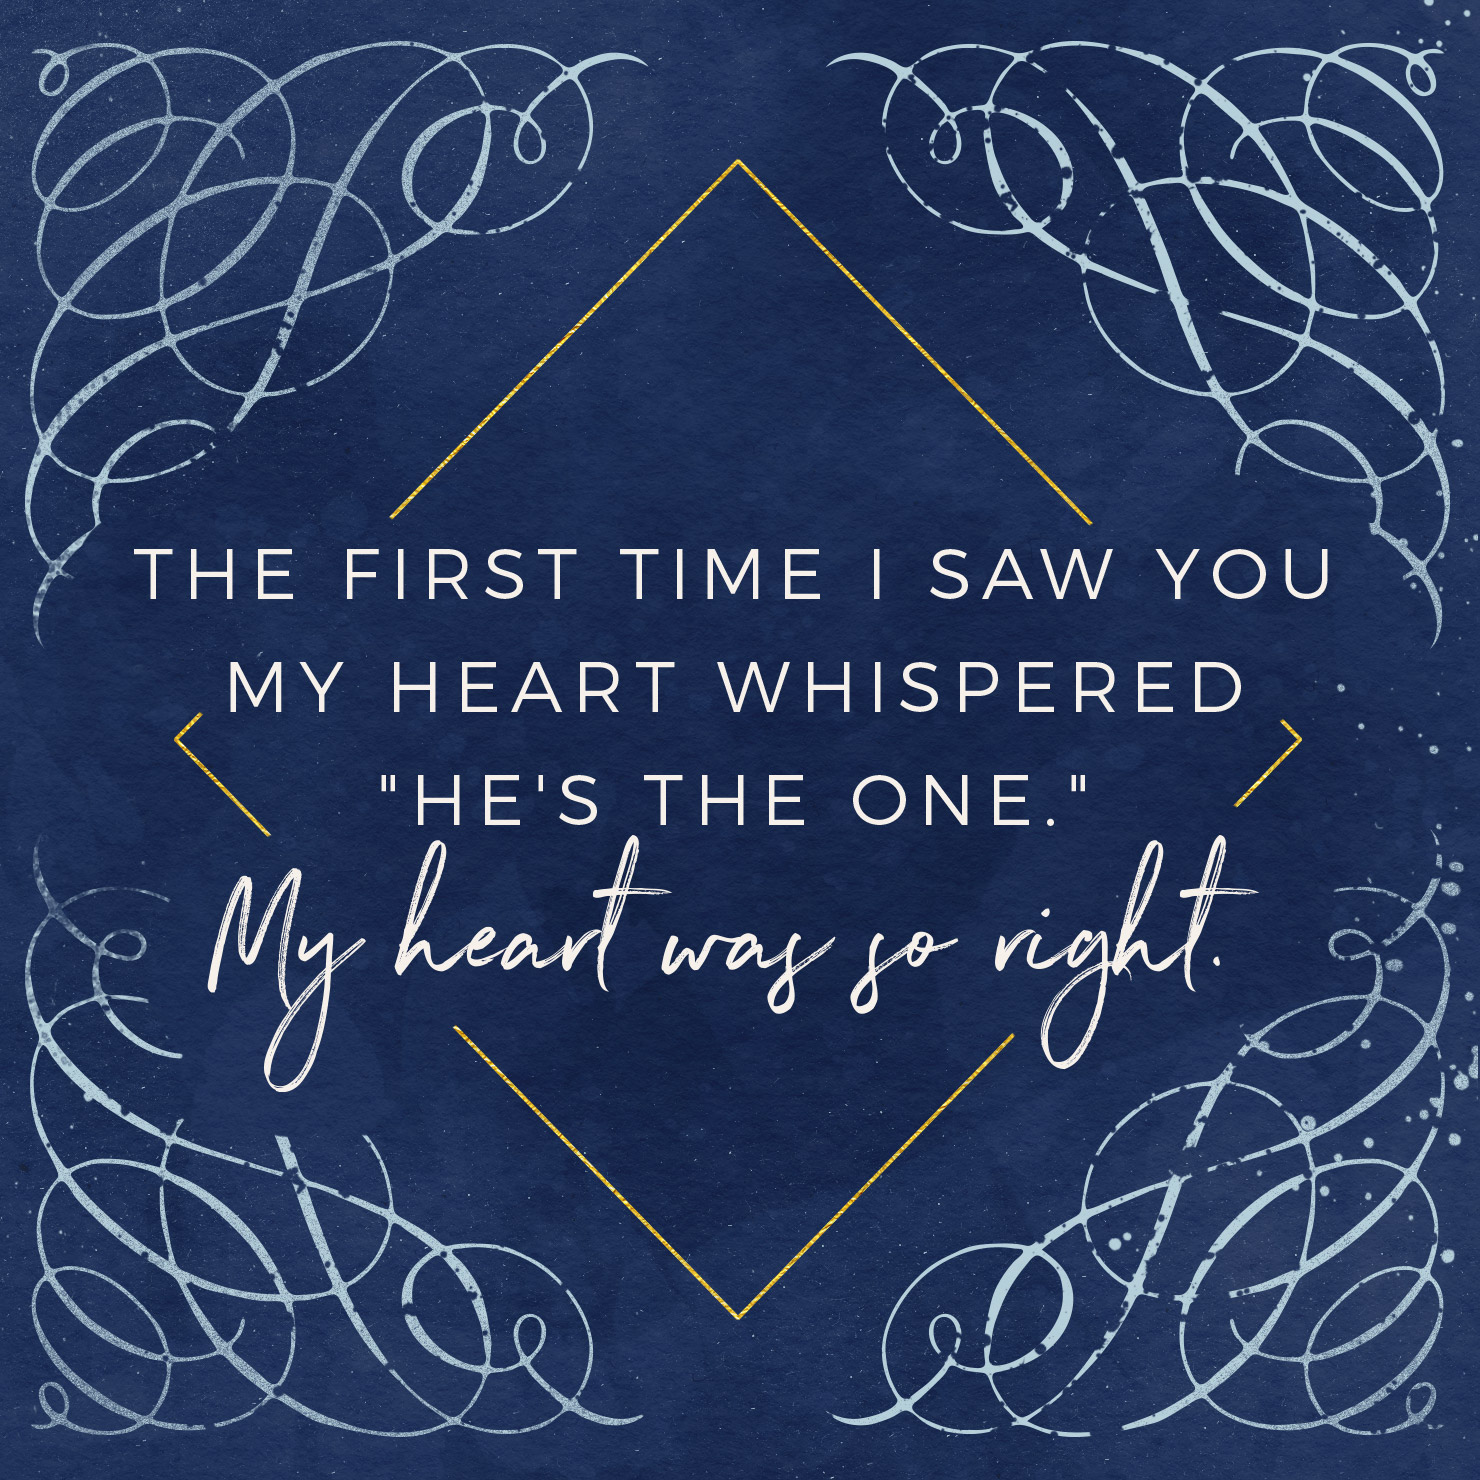 The first time I saw you my heart whispered he's the one. My heart was so right.